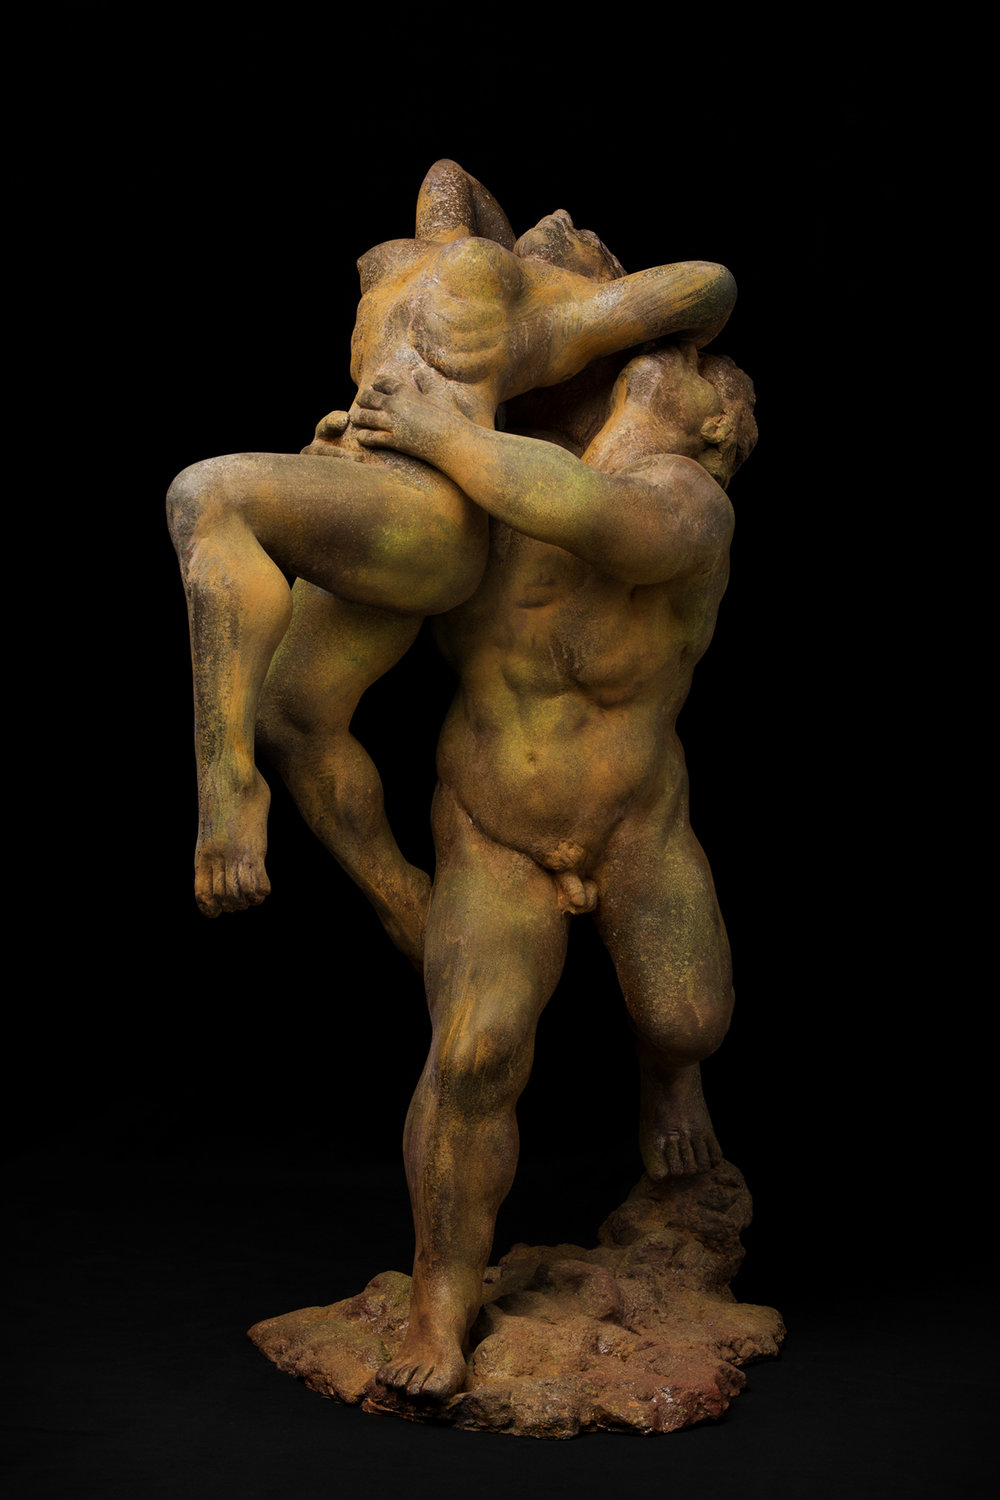 Glenn Marlowe Title: The Lovers Size: 20 x 12 x 8 Price: $5000